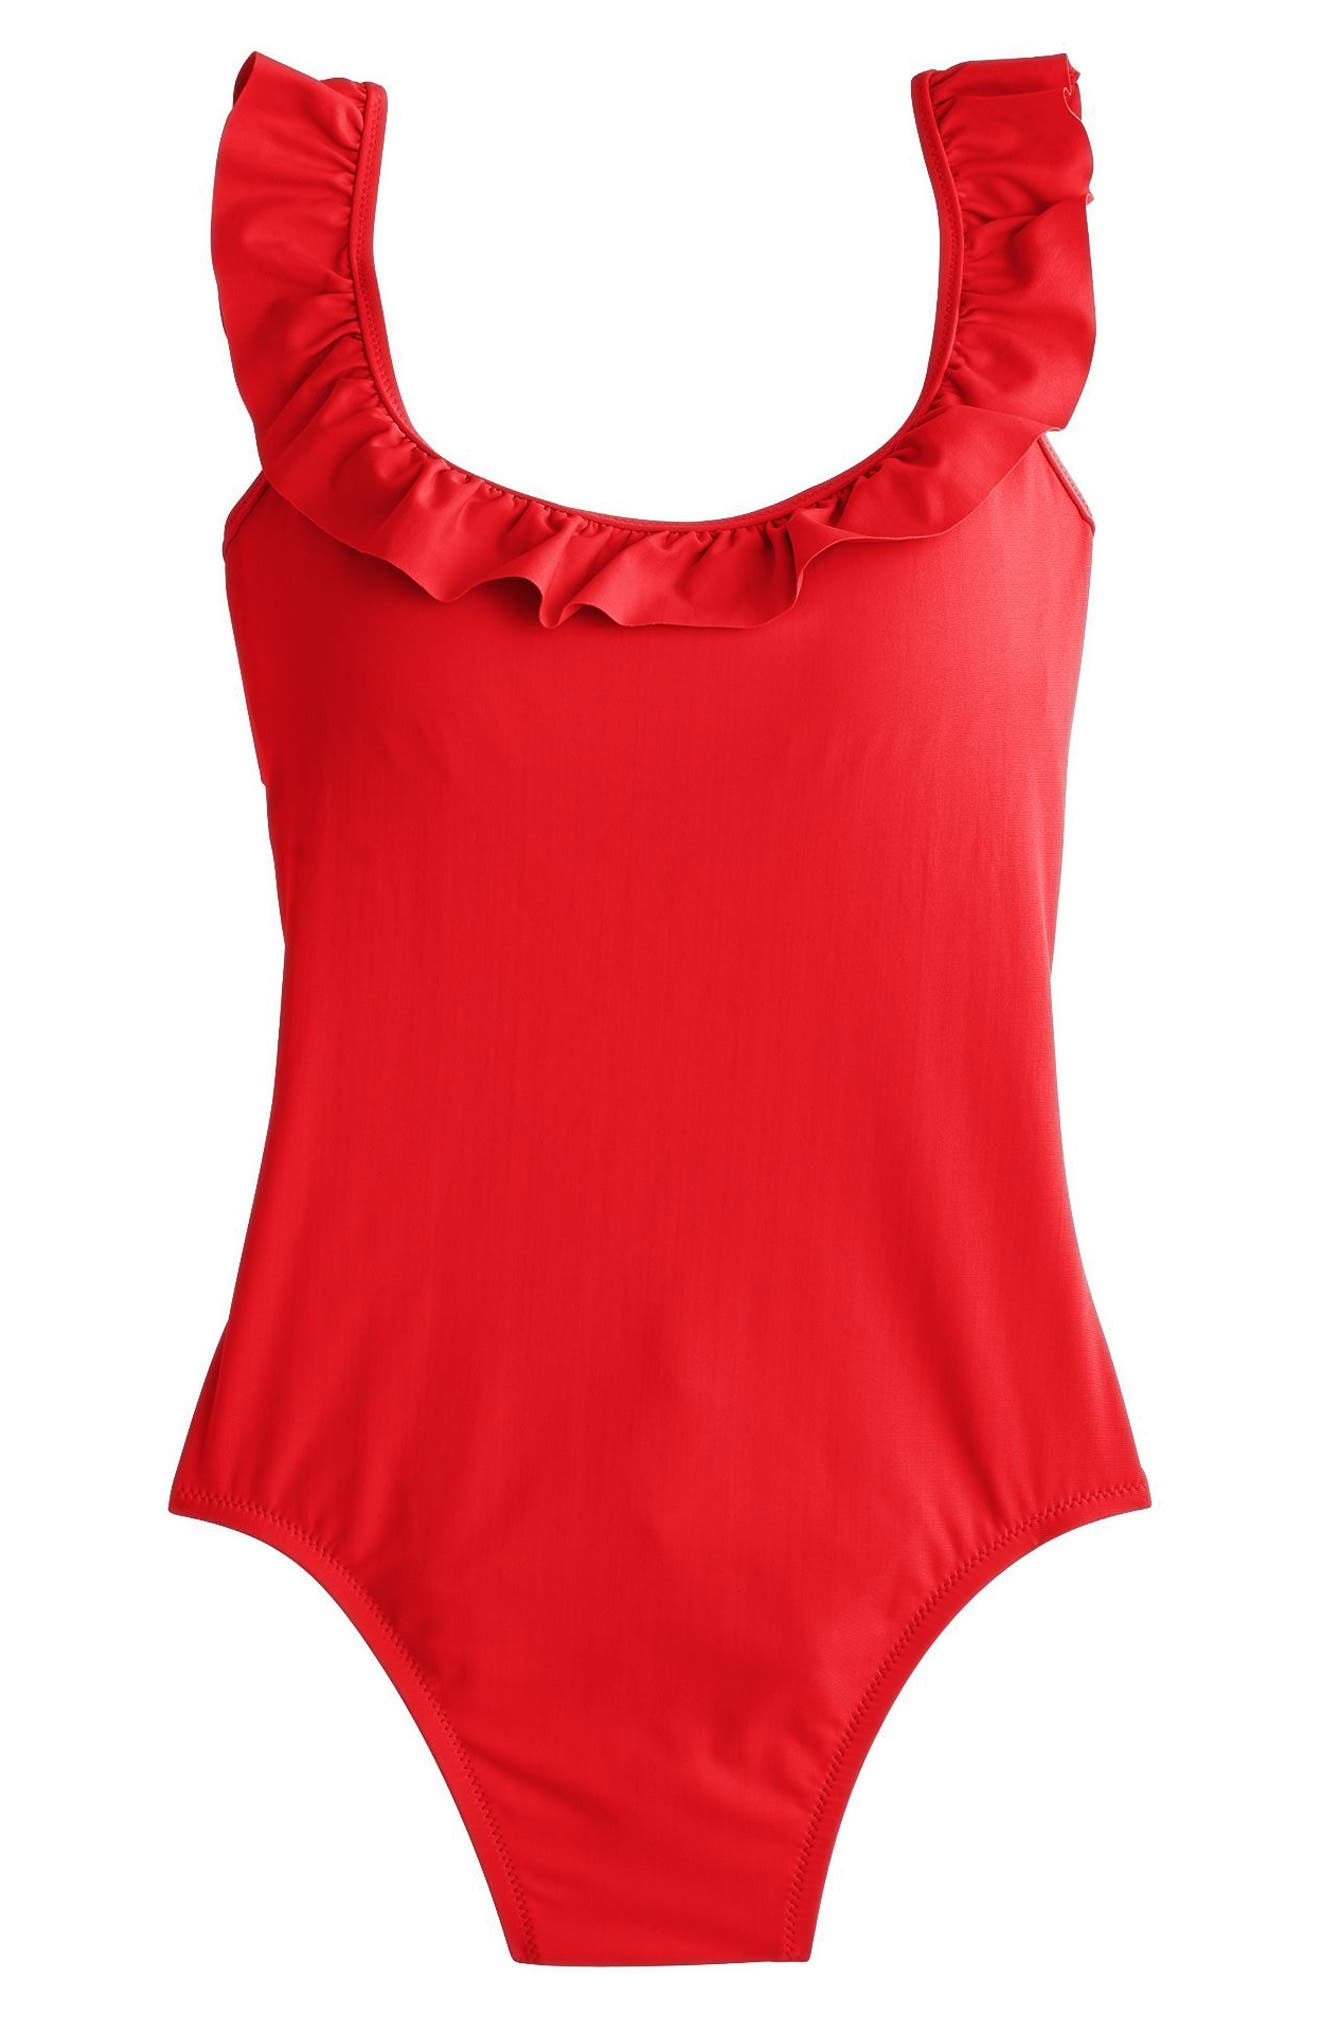 Ruffle Scoop Back One-Piece Swimsuit,                             Alternate thumbnail 4, color,                             Belvedere Red